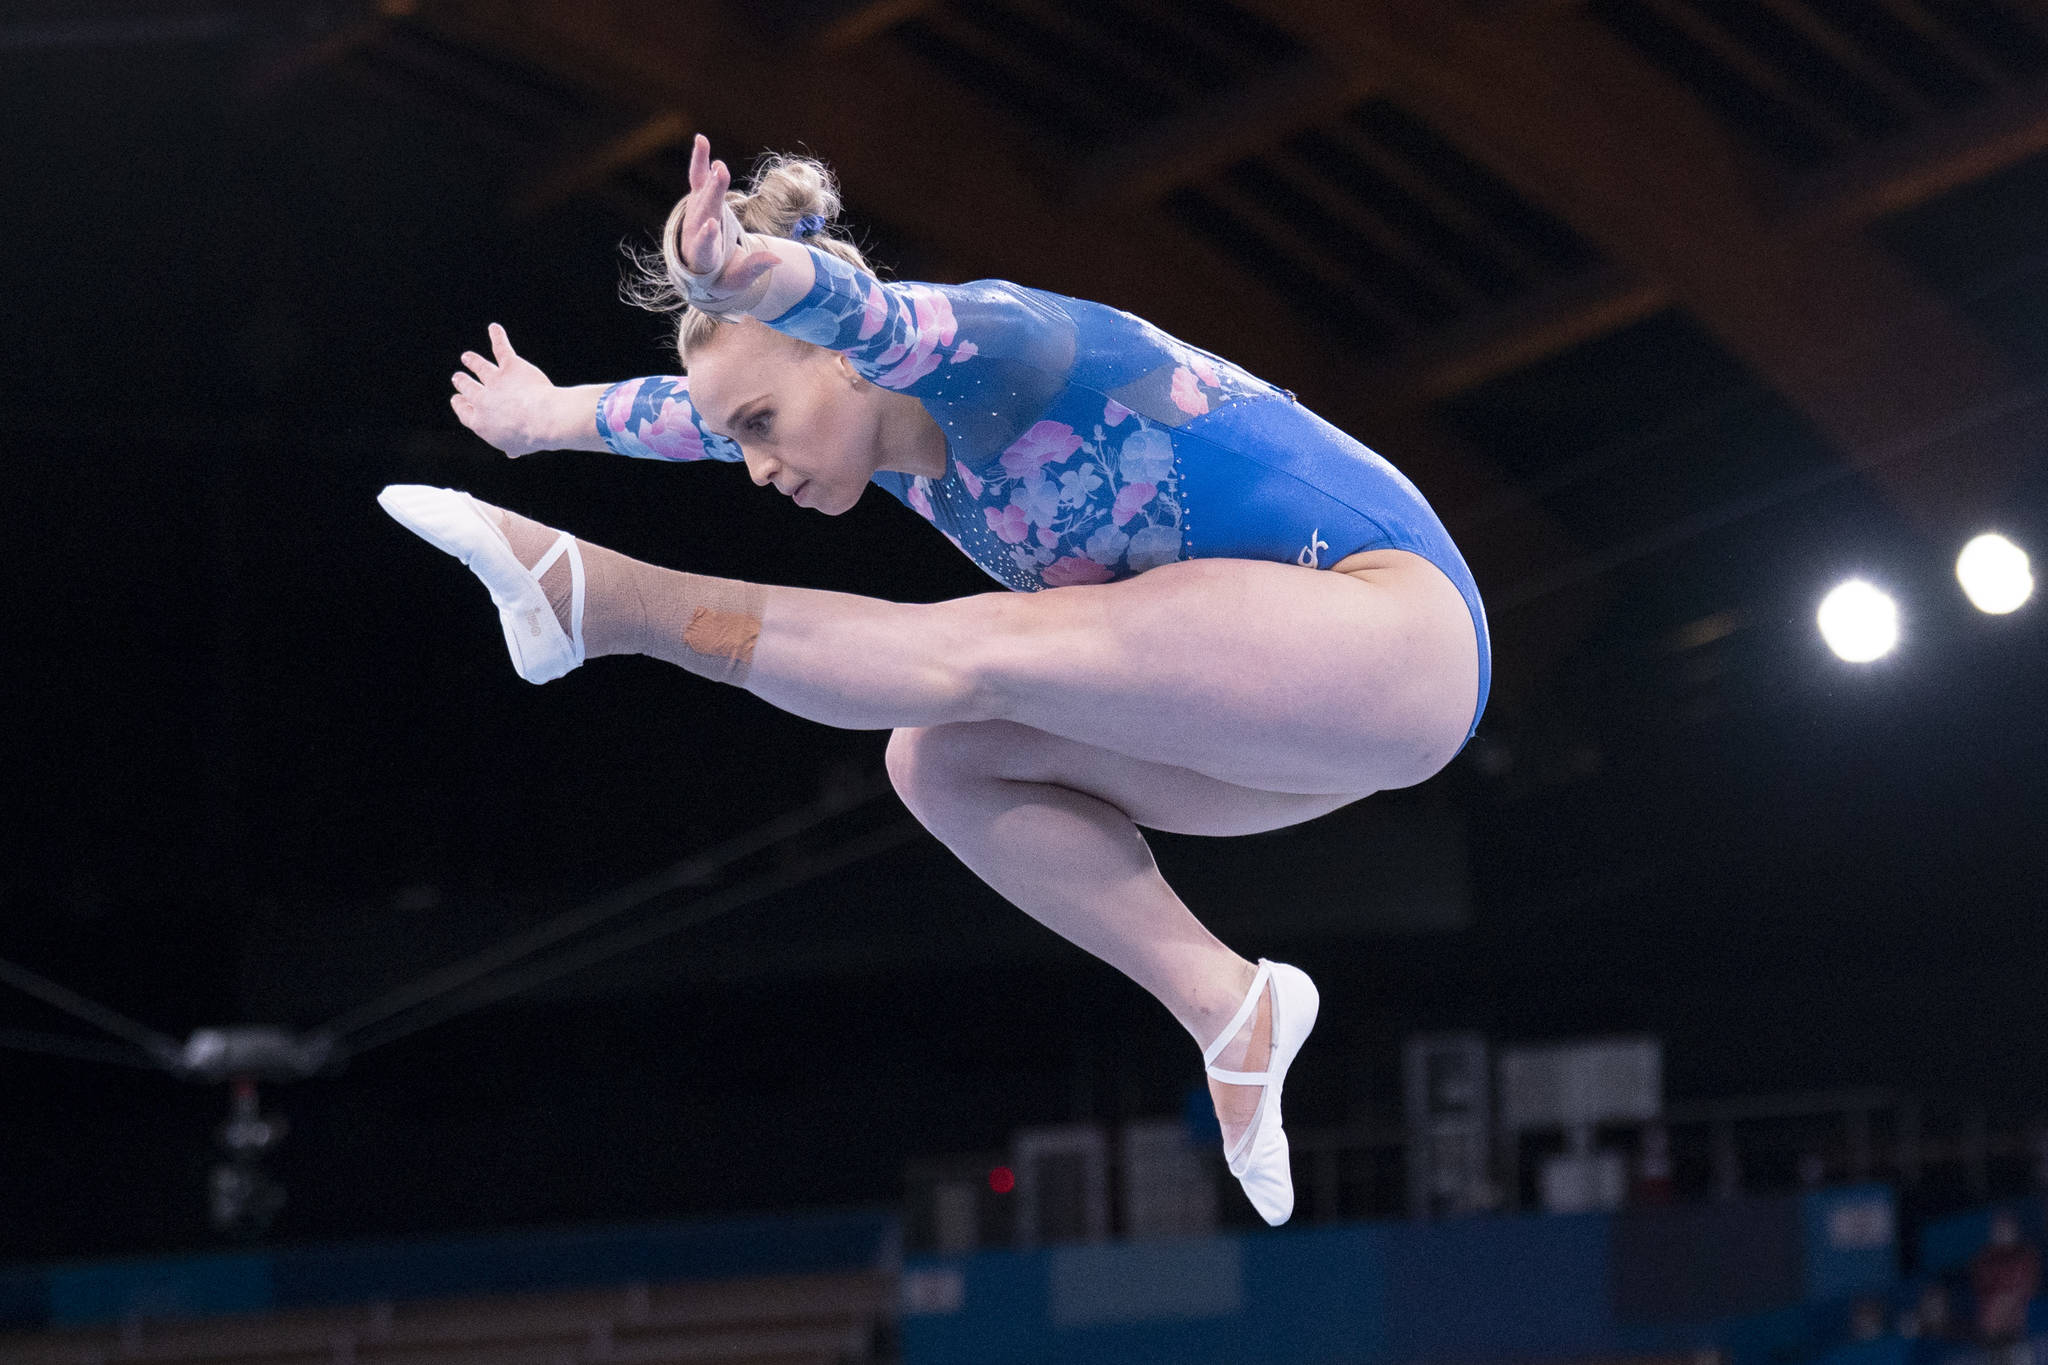 Canadian gymnast Ellie Black, from Halifax, competes in the balance beam final at the 2020 Tokyo Olympics, Tuesday, August 3, 2021 in Tokyo, Japan. THE CANADIAN PRESS/Adrian Wyld